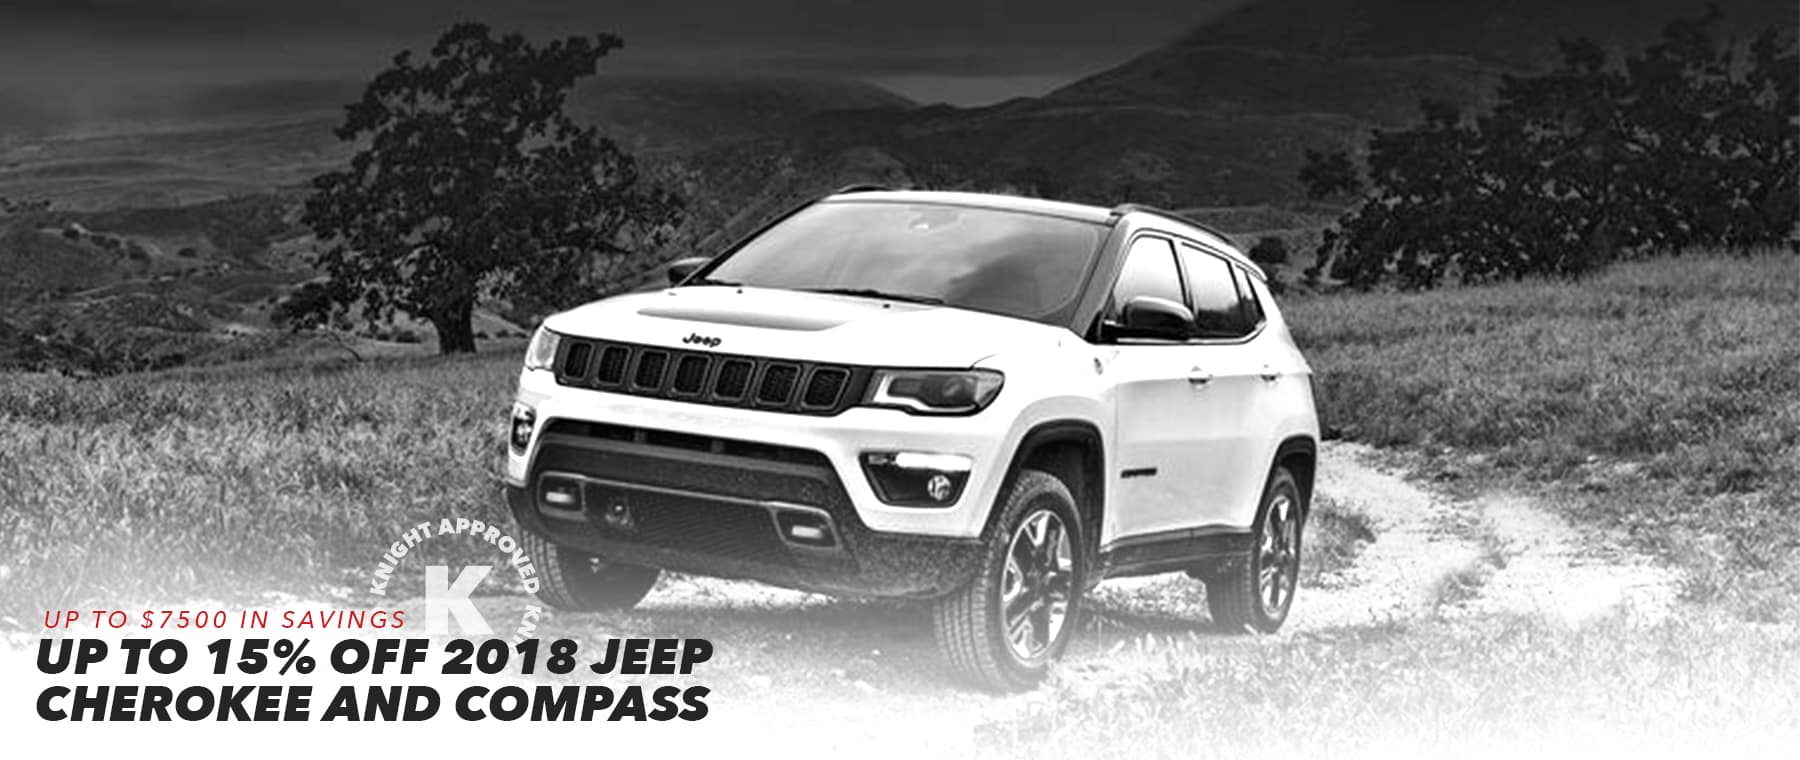 2018 Jeep Cherokee and Compass Homepage Slider